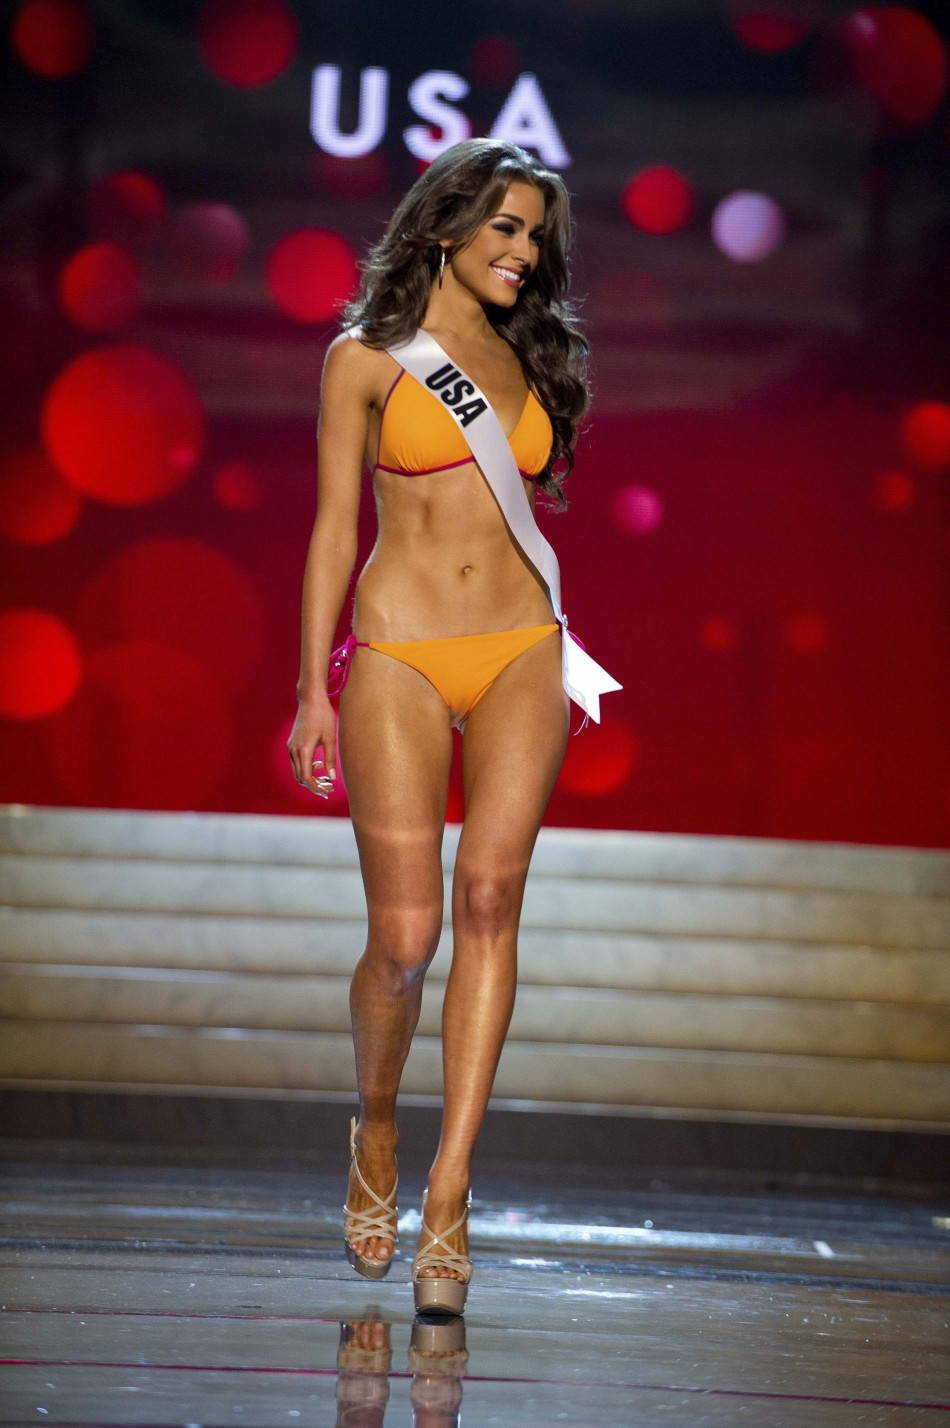 Miss Universe 2012: Contestants Shine in Swimsuit Round [SLIDESHOW]